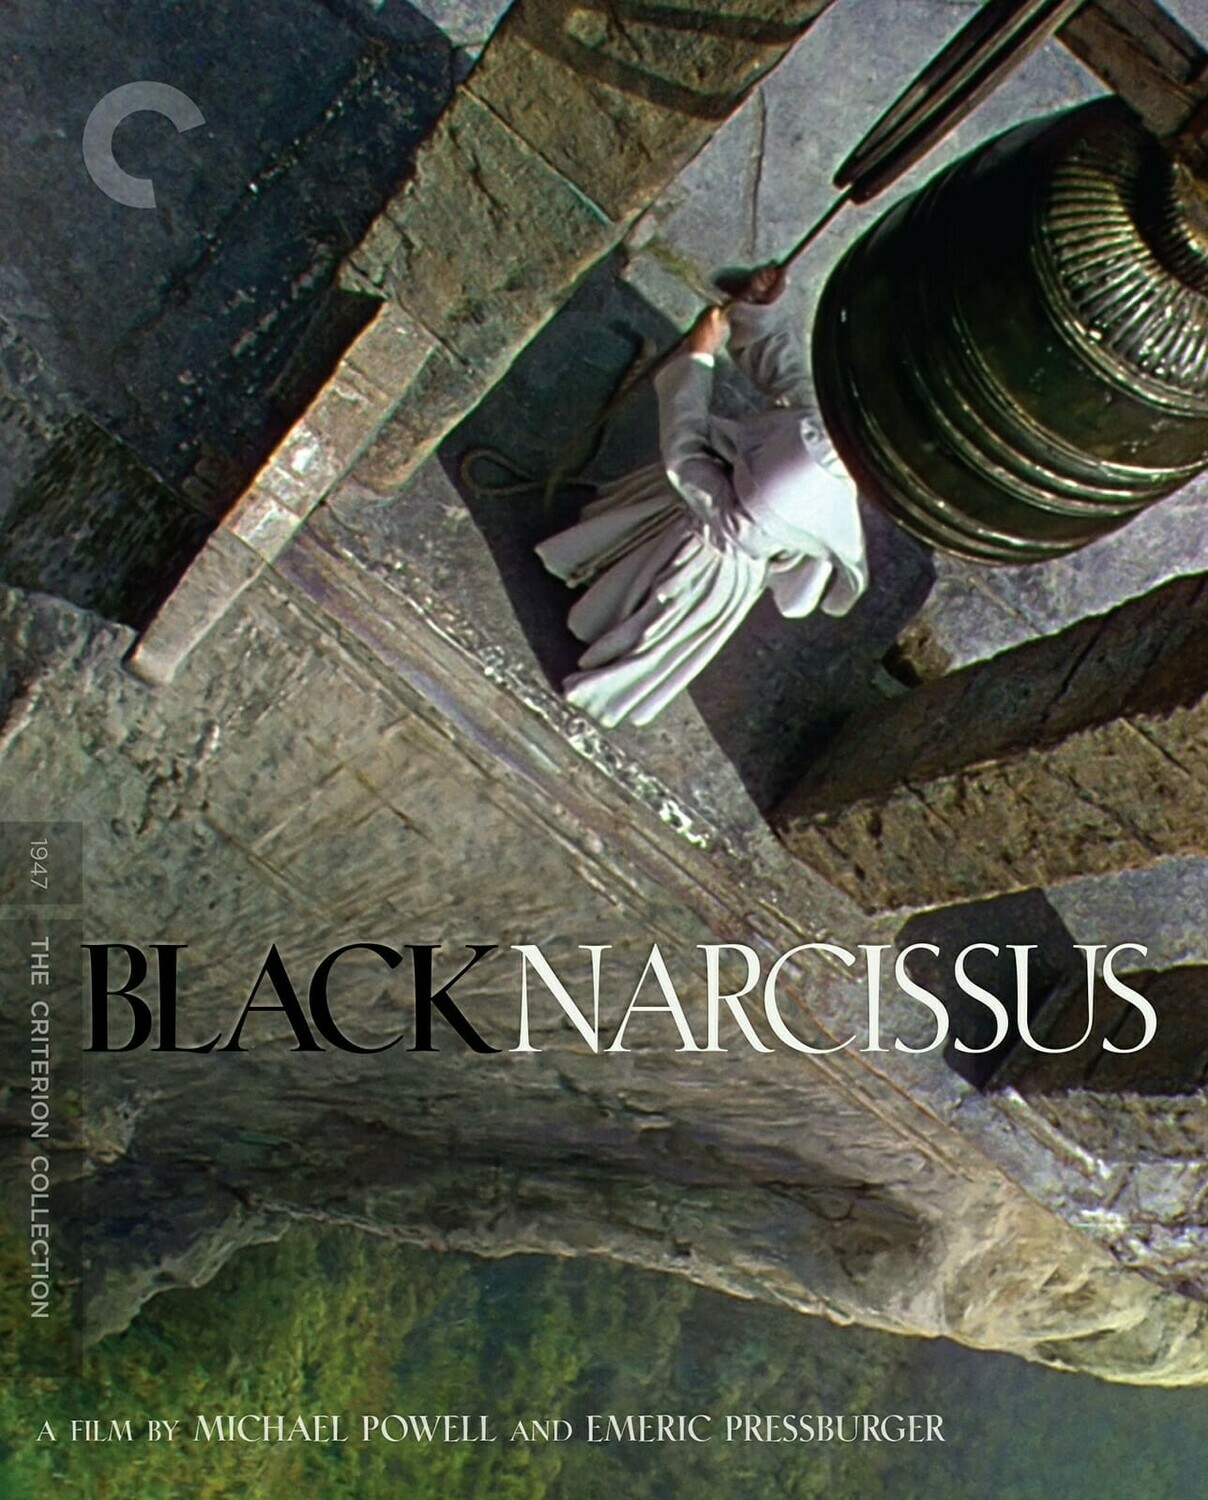 BLACK NARCISSUS - BLURAY